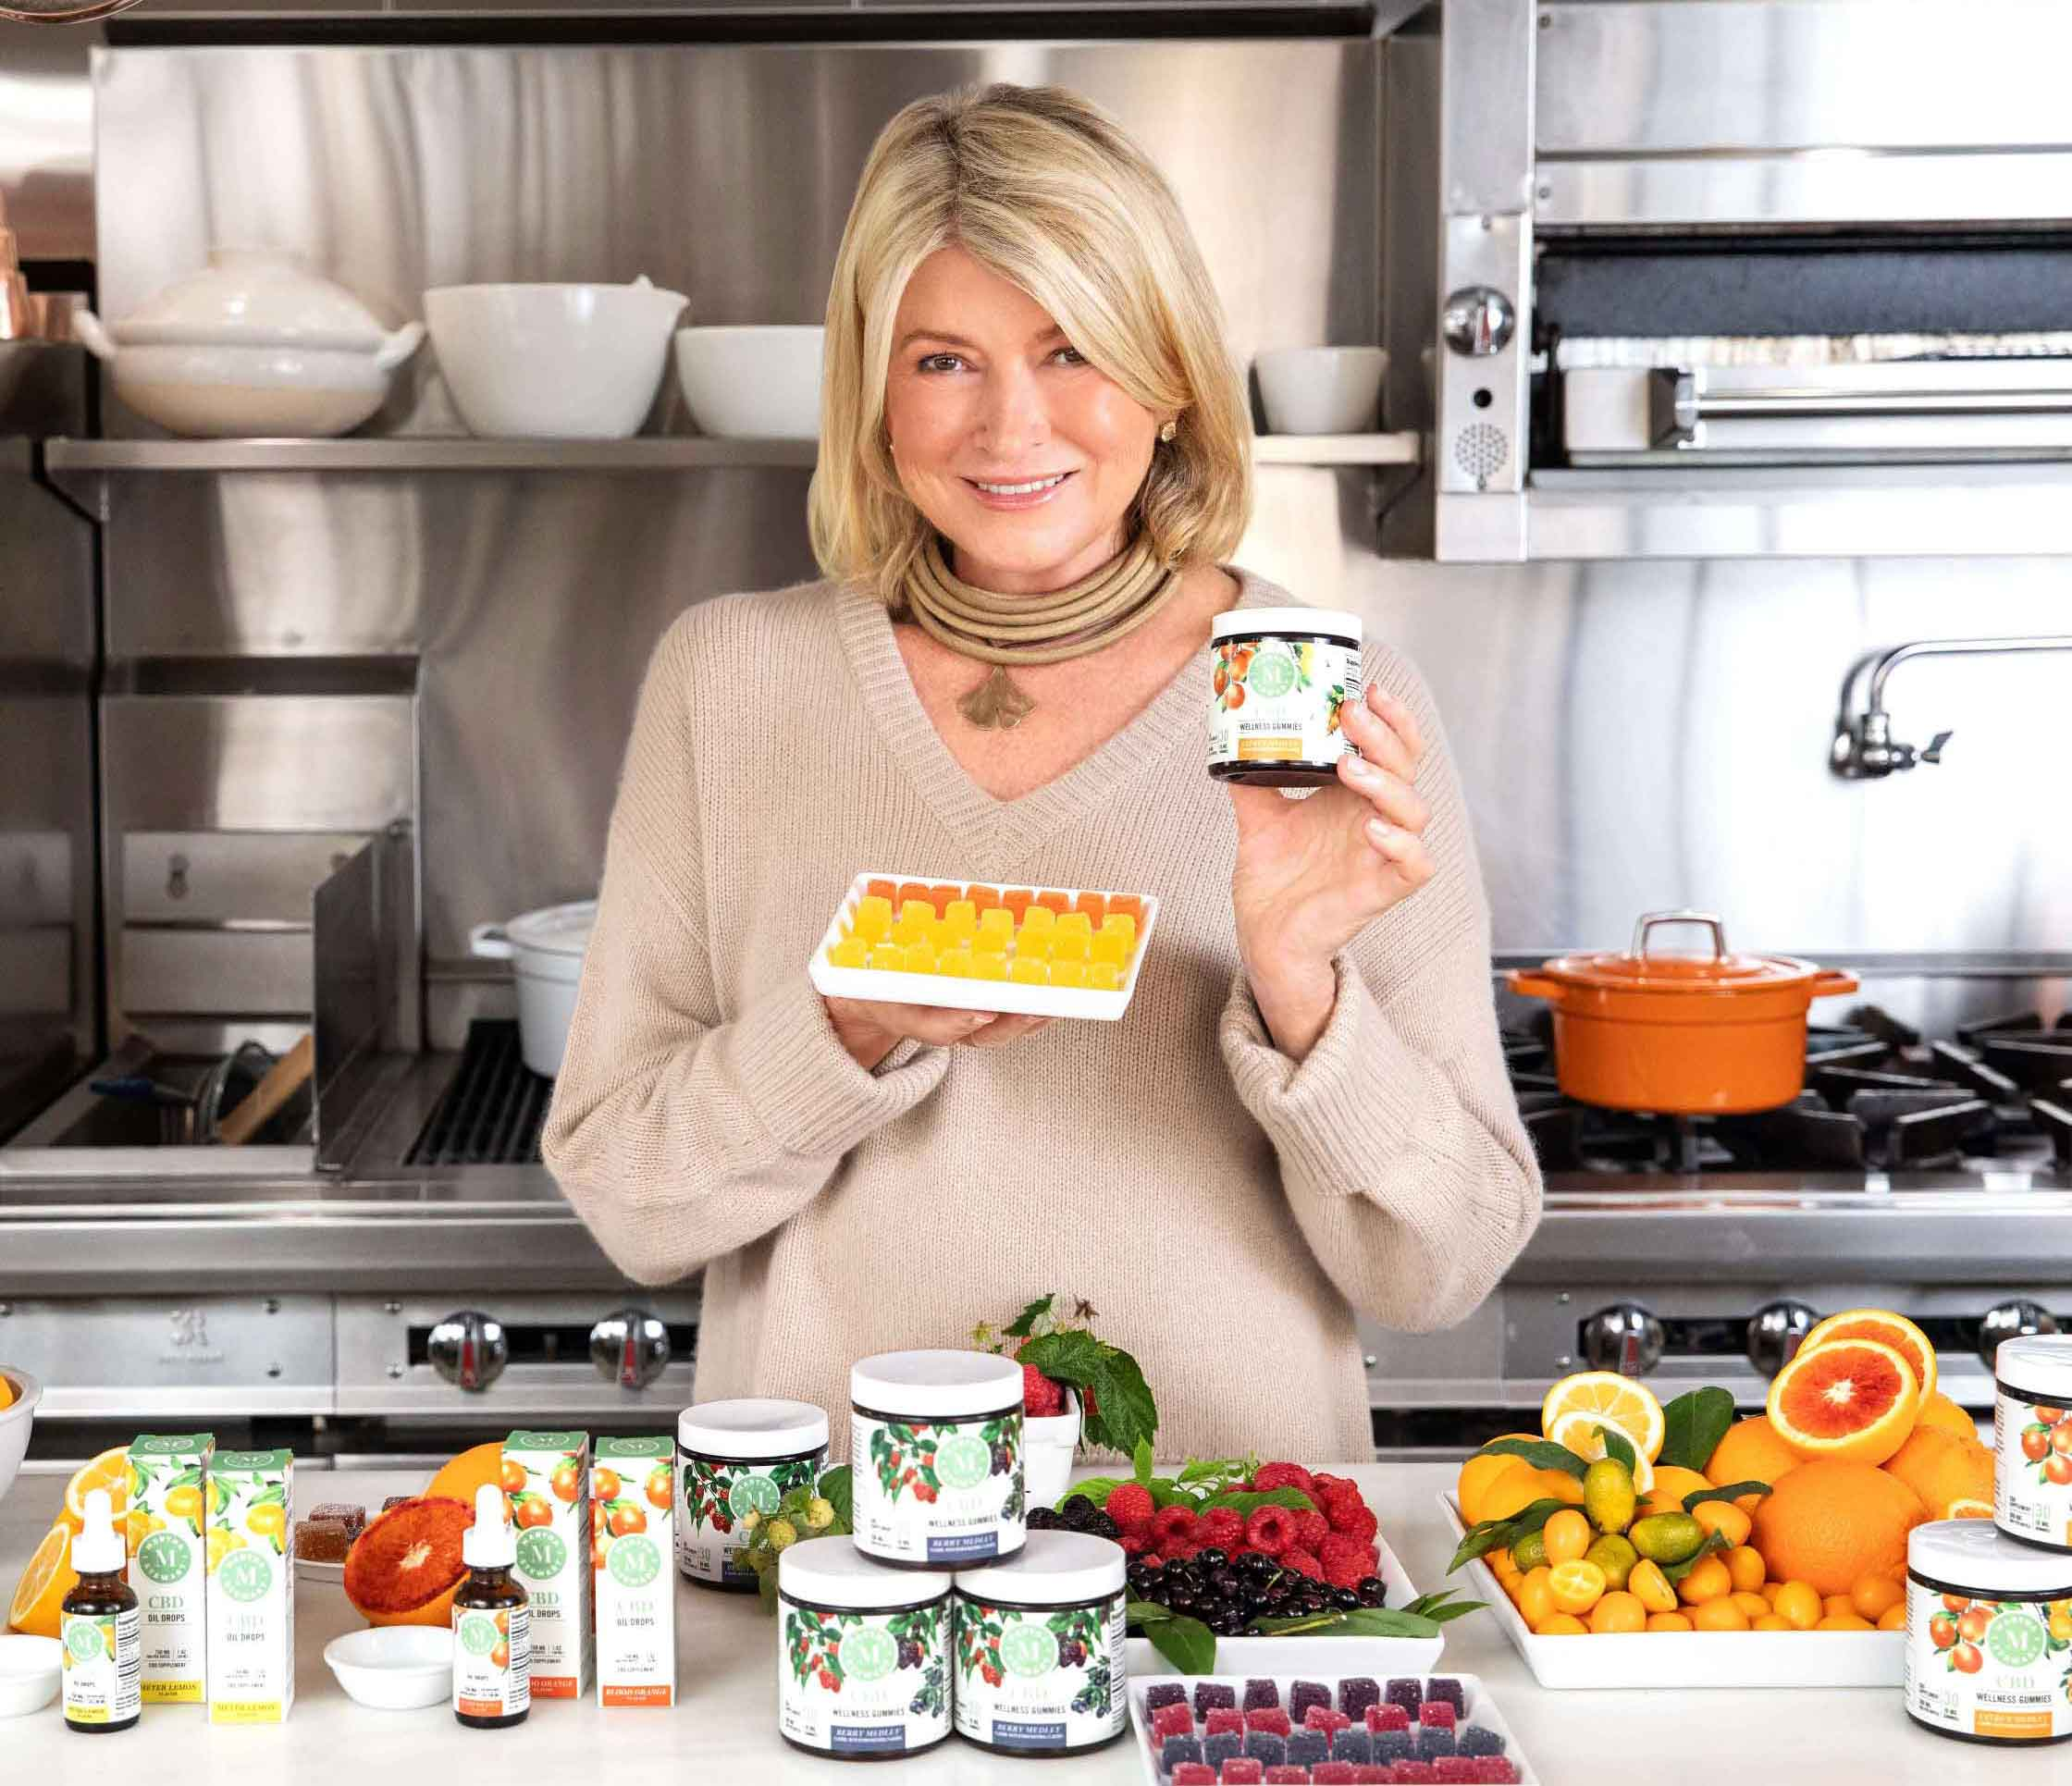 Martha Stewart holding citrus wellness CBD gummies